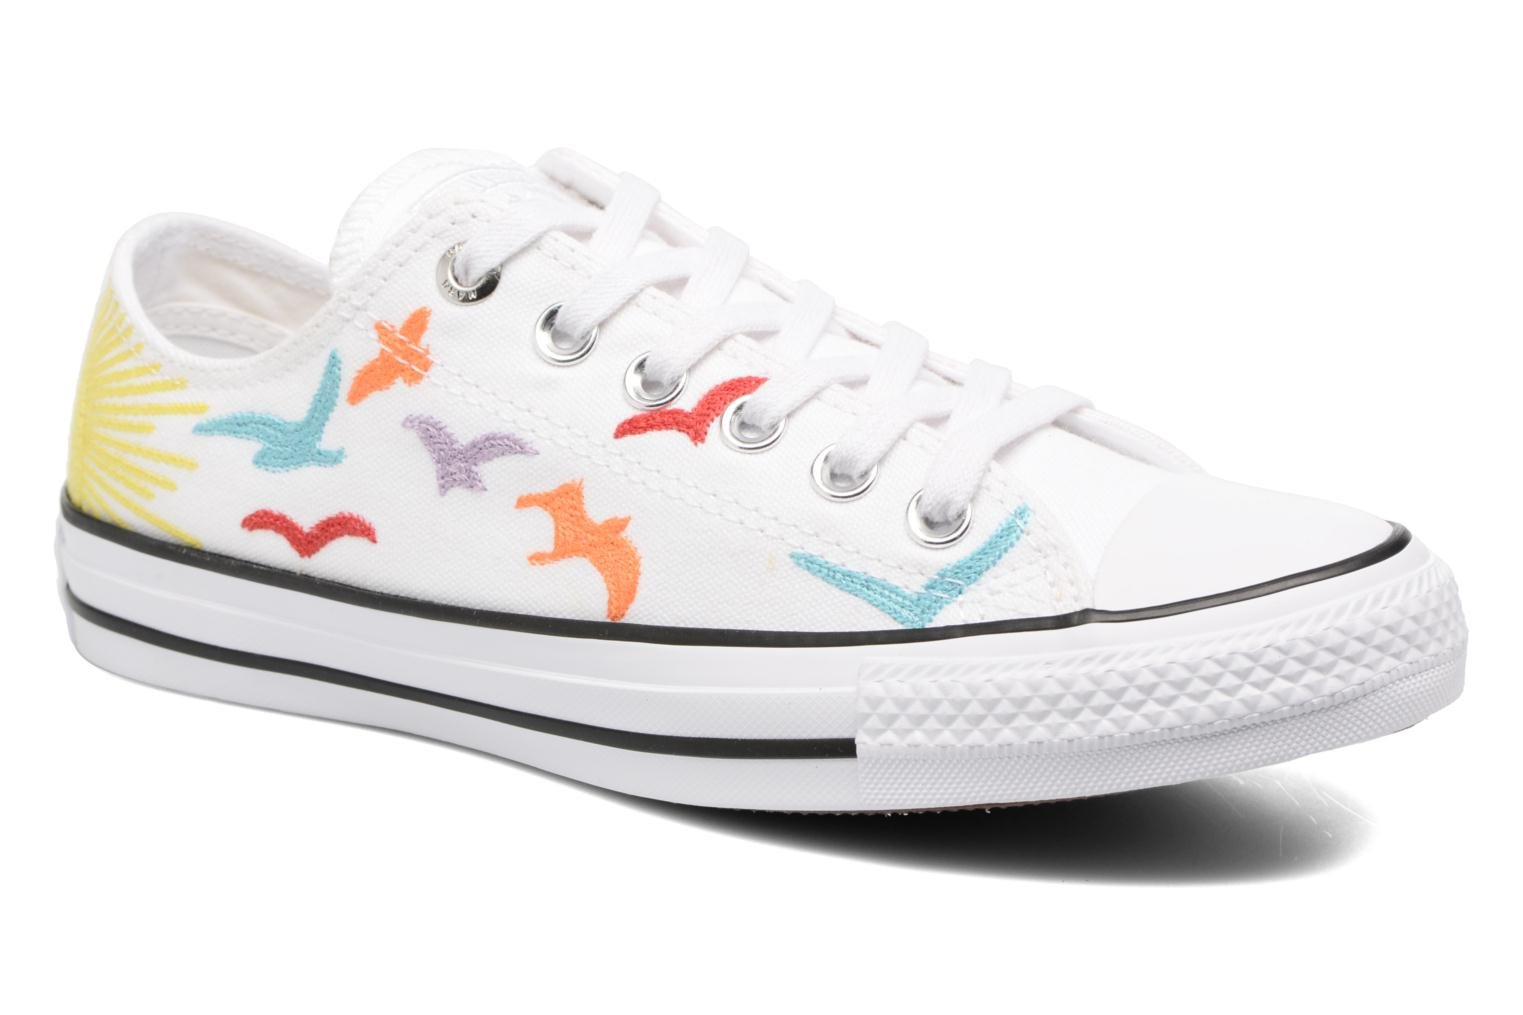 Baskets Converse Chuck Taylor All Star Mara Hoffman Rainbow Birds Ox Blanc vue détail/paire